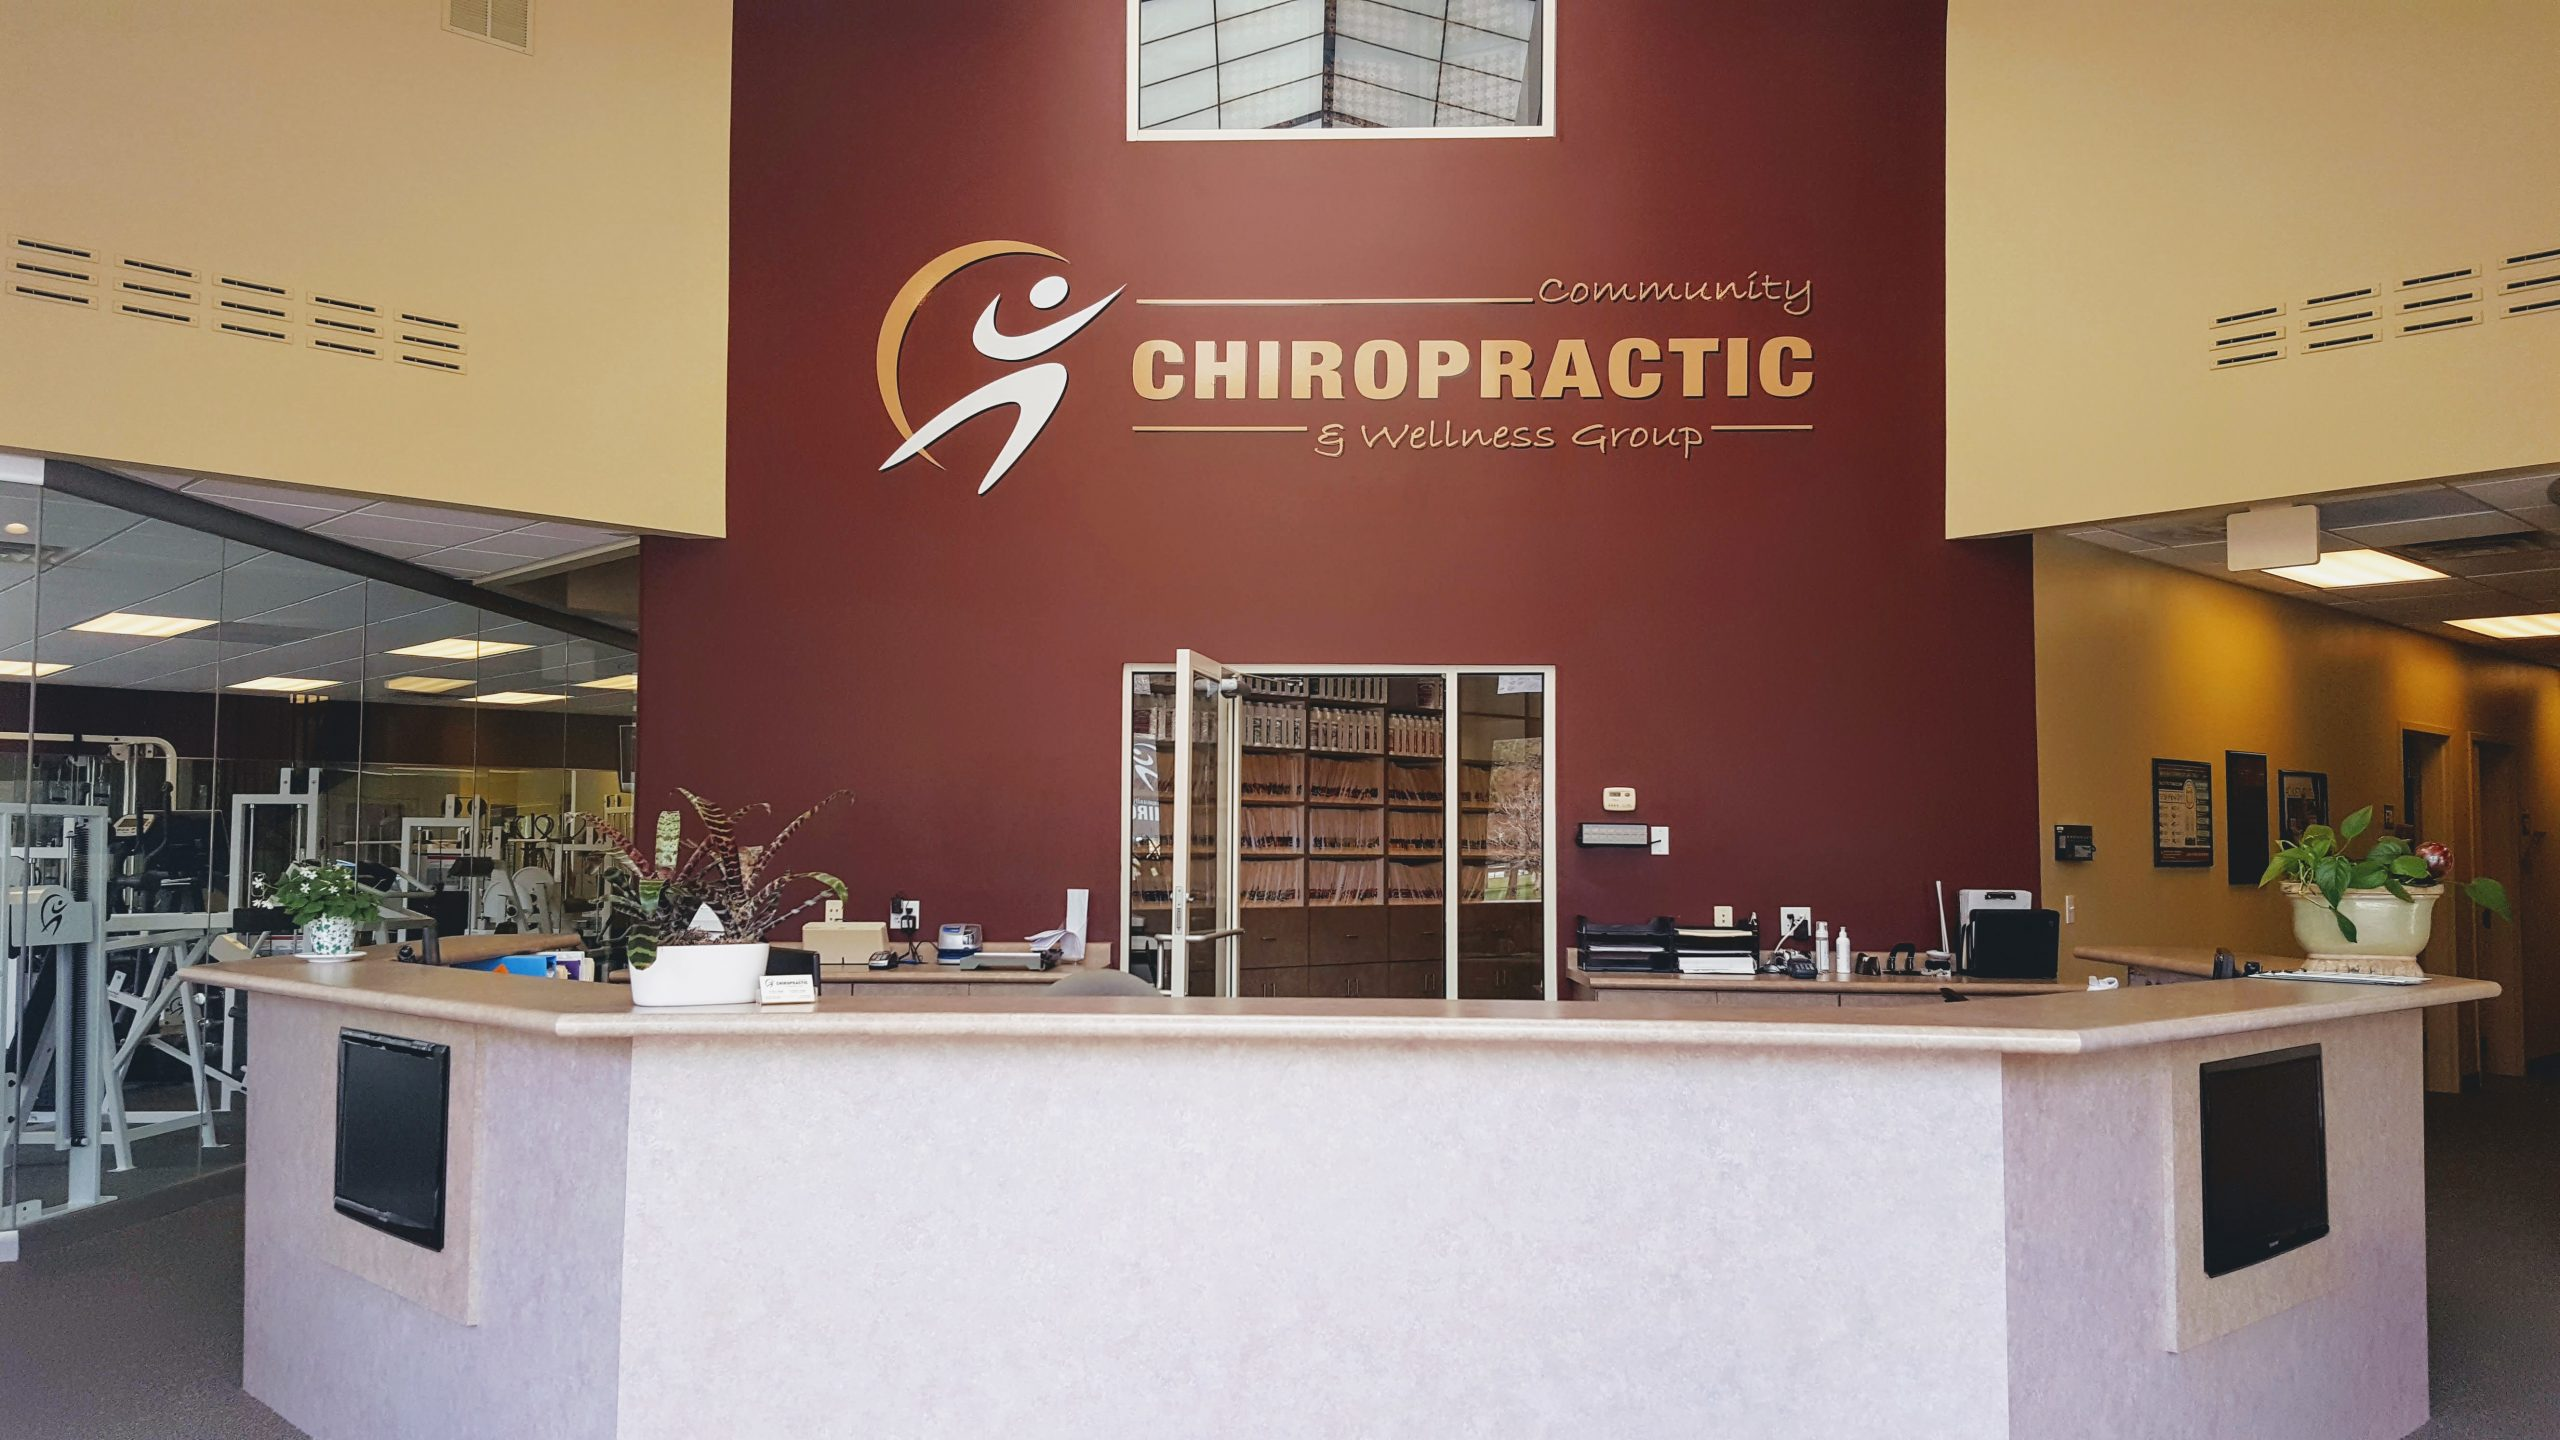 NJ: Senate Bill Would Reform Chiropractor Board, Ban Sex Offenders from All Health Care Positions